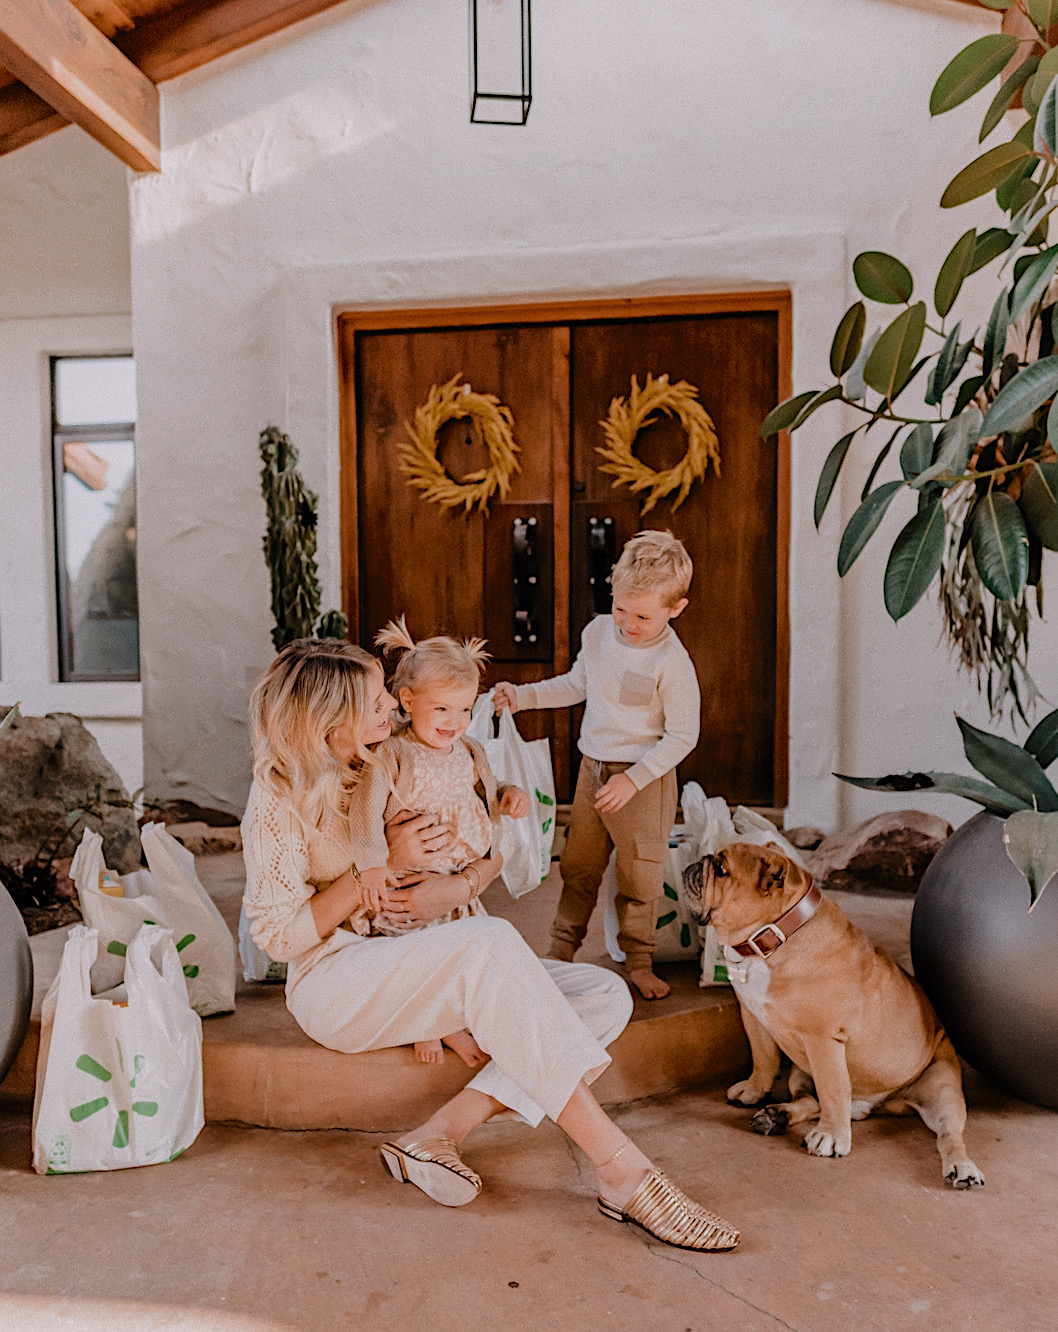 mom hacks saving money and time with walmart+ membership | Walmart Membership by popular San Diego fashion blog, Navy Grace: image of a mom, her two kids, and her do sitting outside on their front steps next to some Walmart grocery bags.